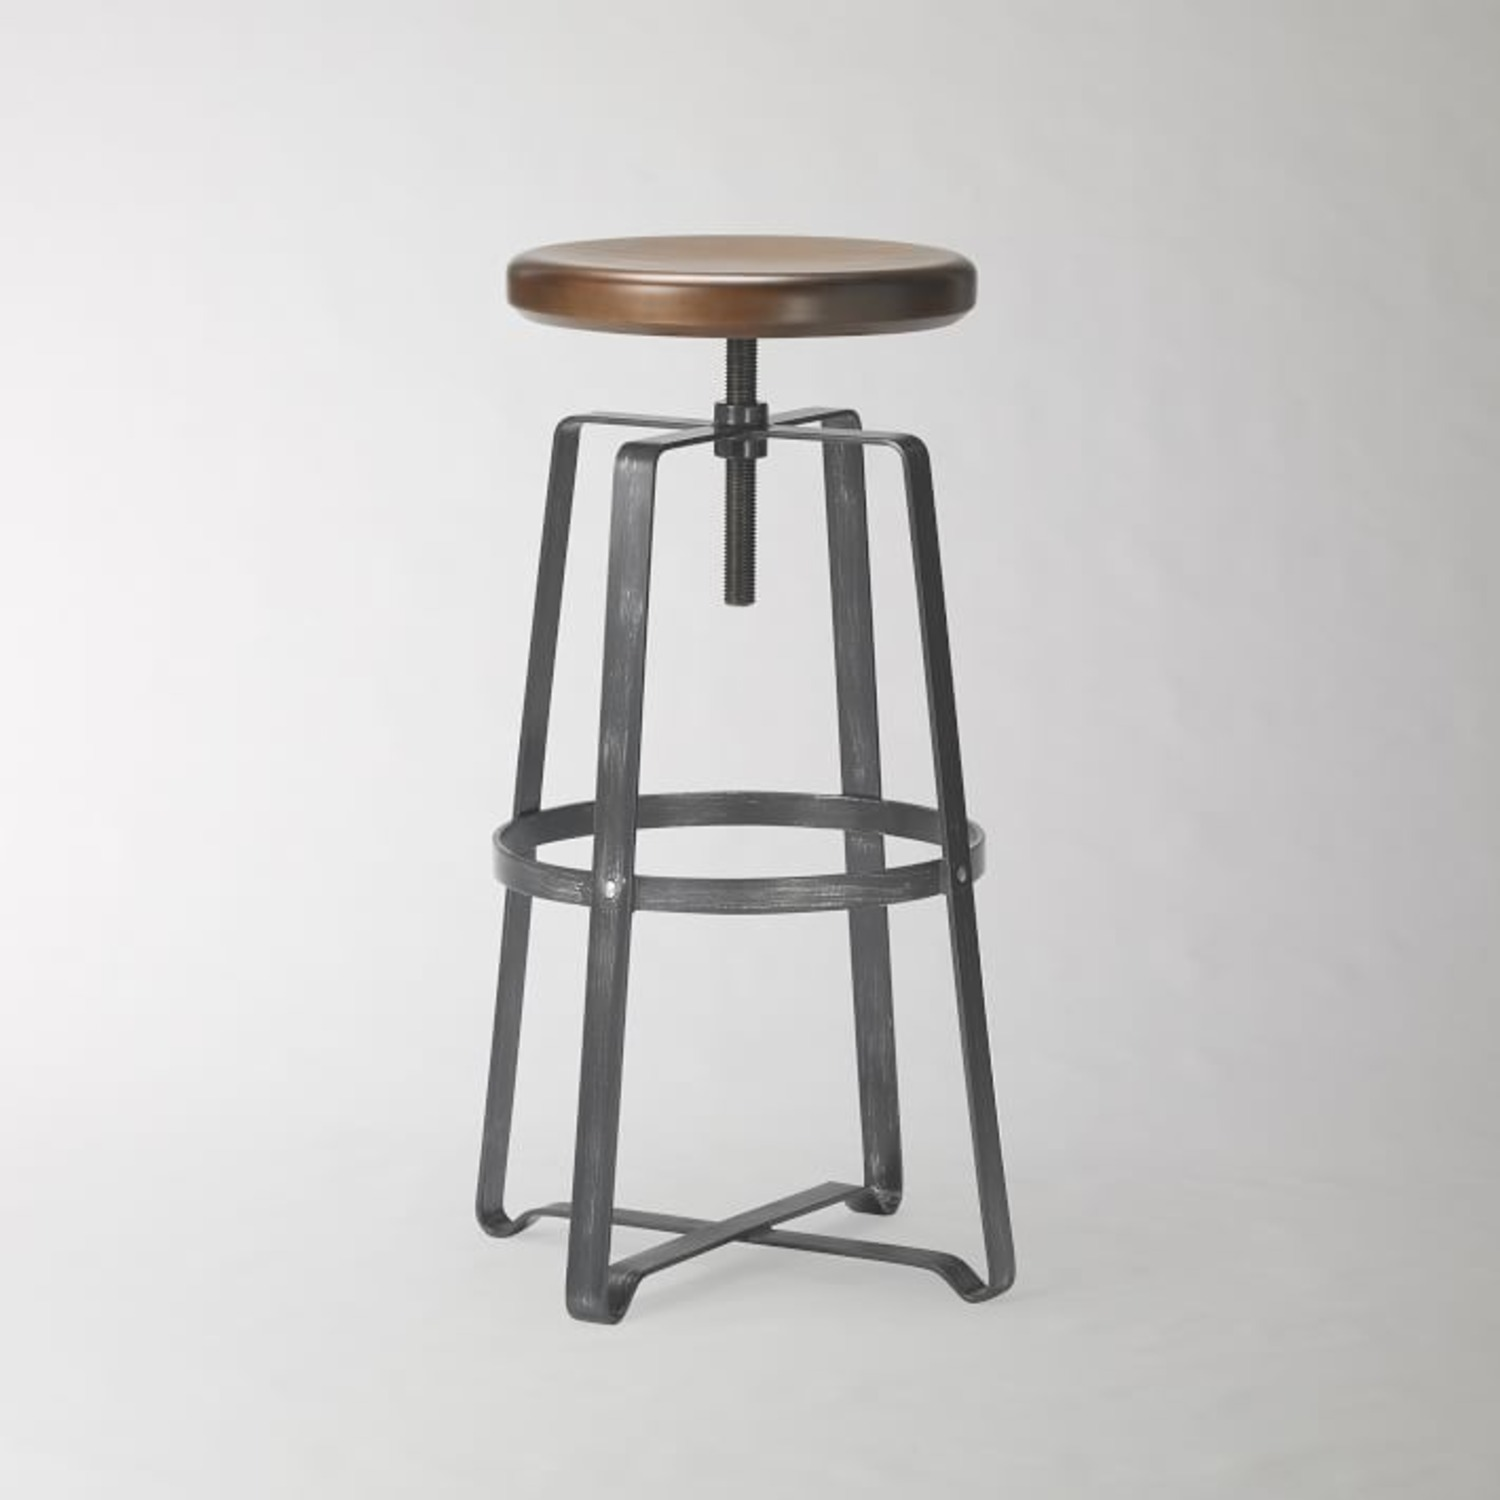 West Elm Adjustable Industrial Wood Counter Stool - image-2